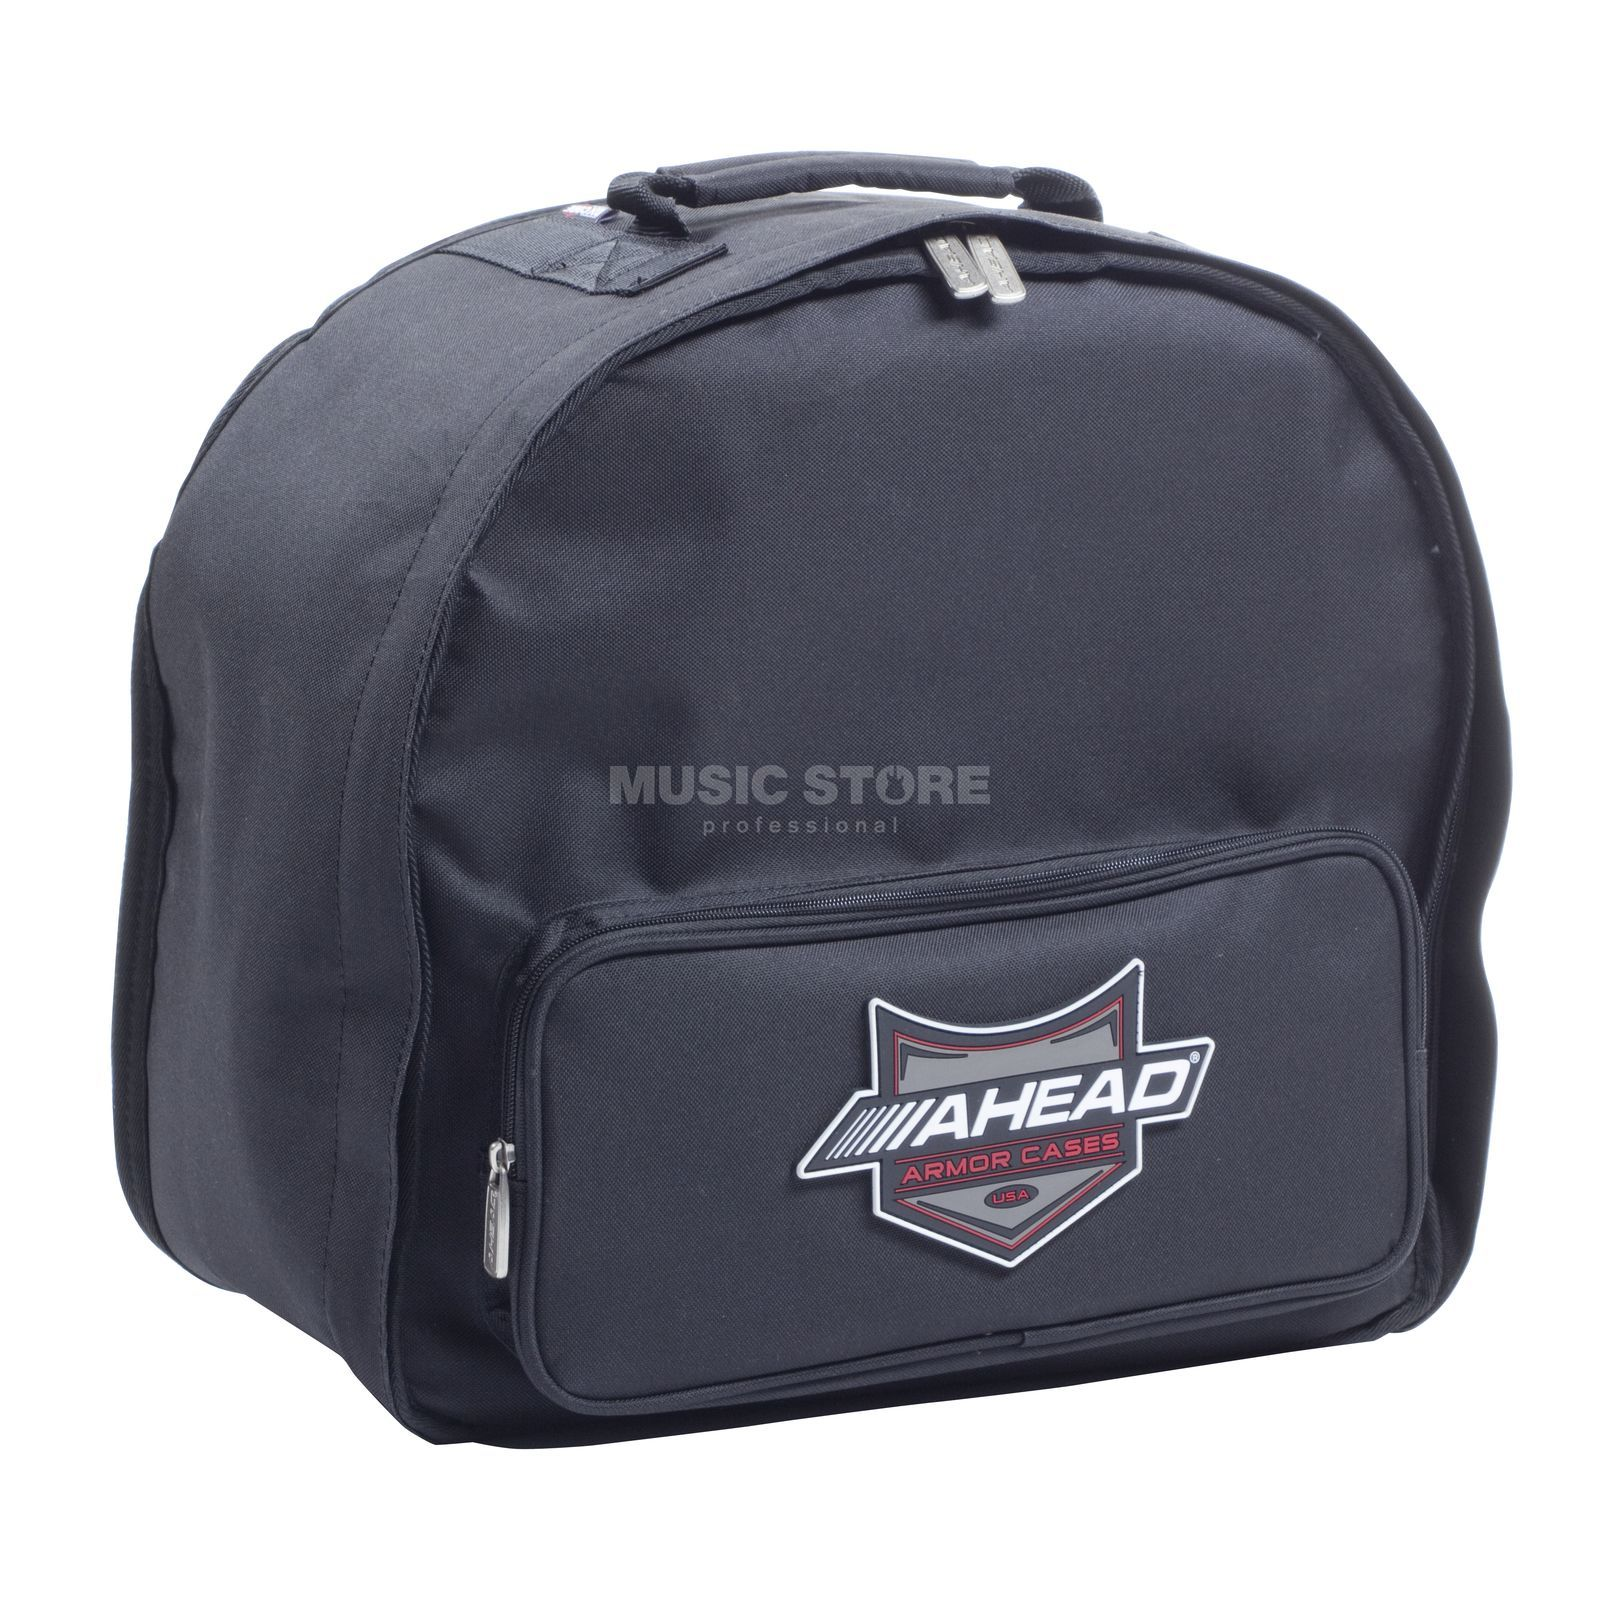 Ahead Armor Cases Bag for Drum Throne AA9026 Product Image